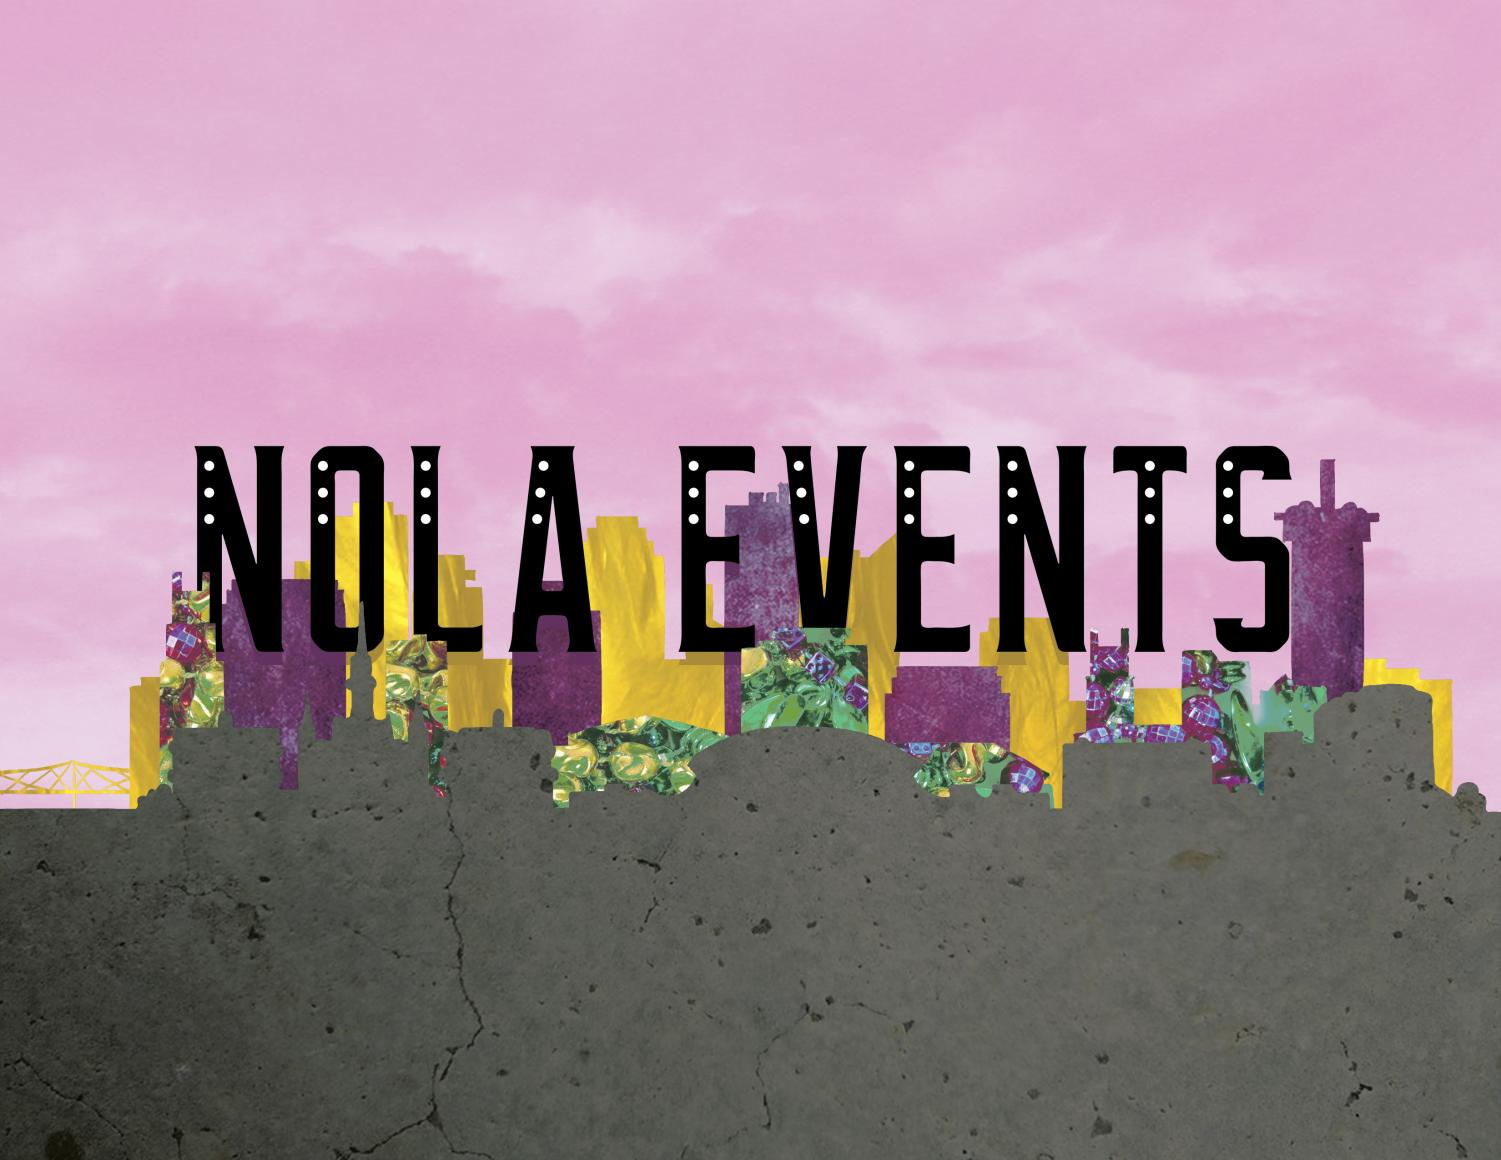 Arcade's February events preview • The Tulane Hullabaloo